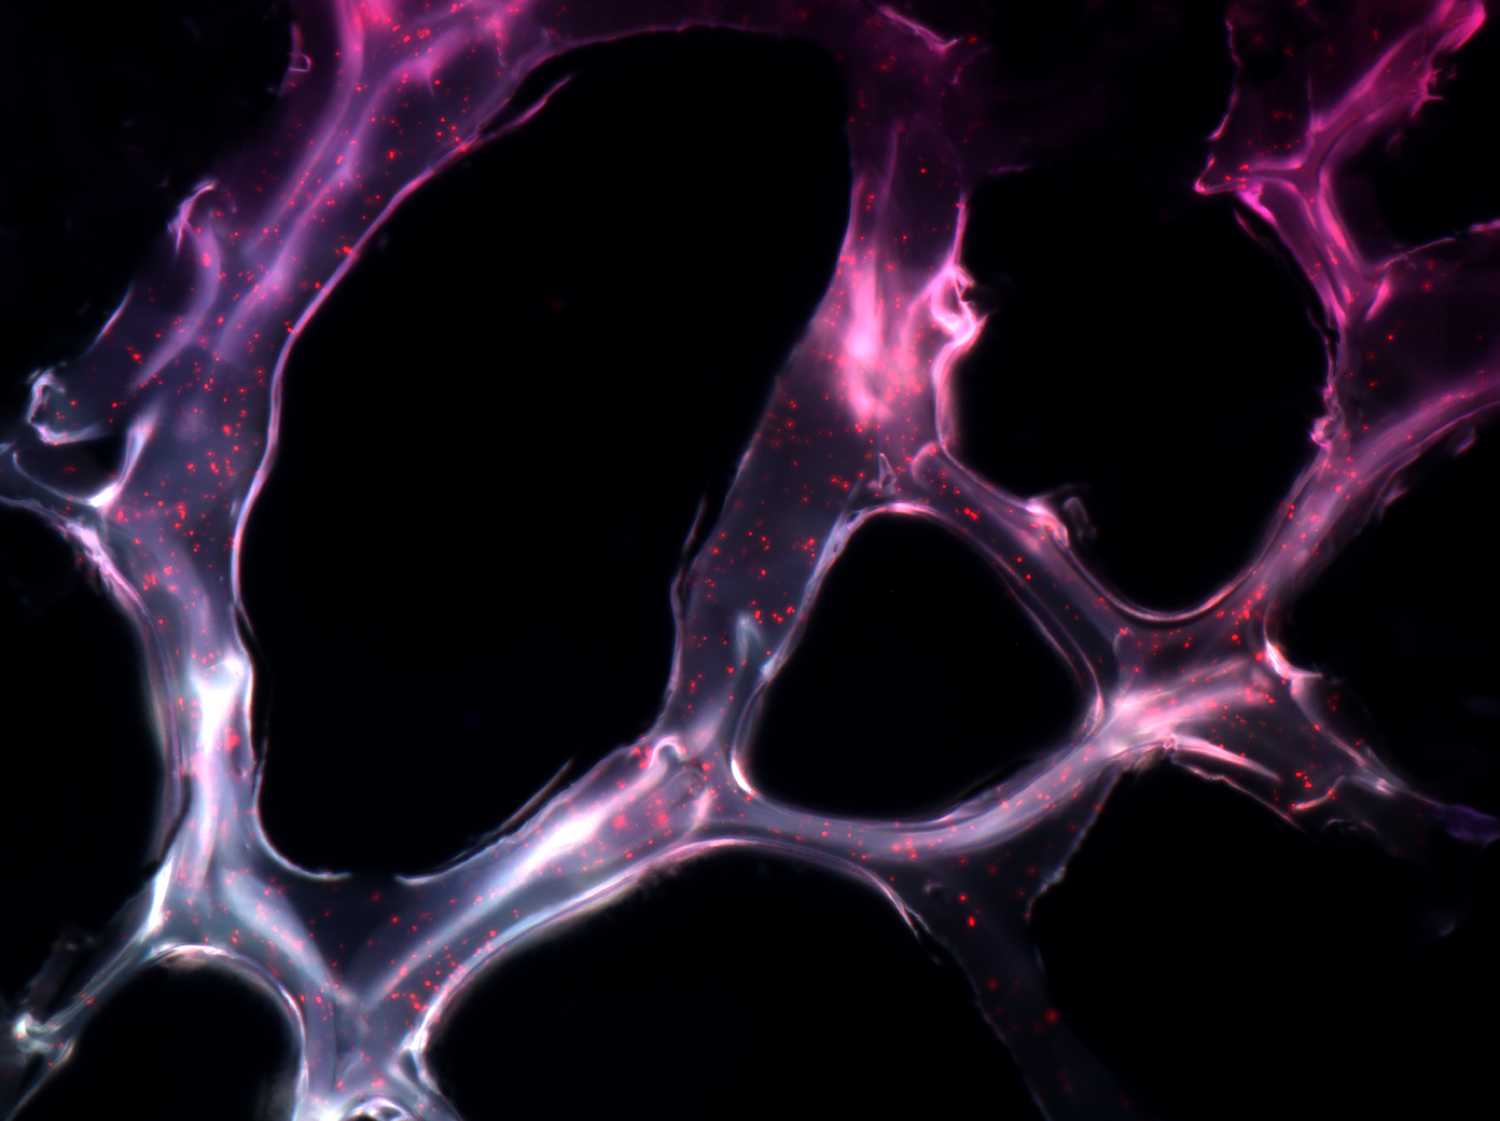 Fluorescence microscopy image of the adhesive hydrogel doped with nanoparticles for treatment of TNBC.